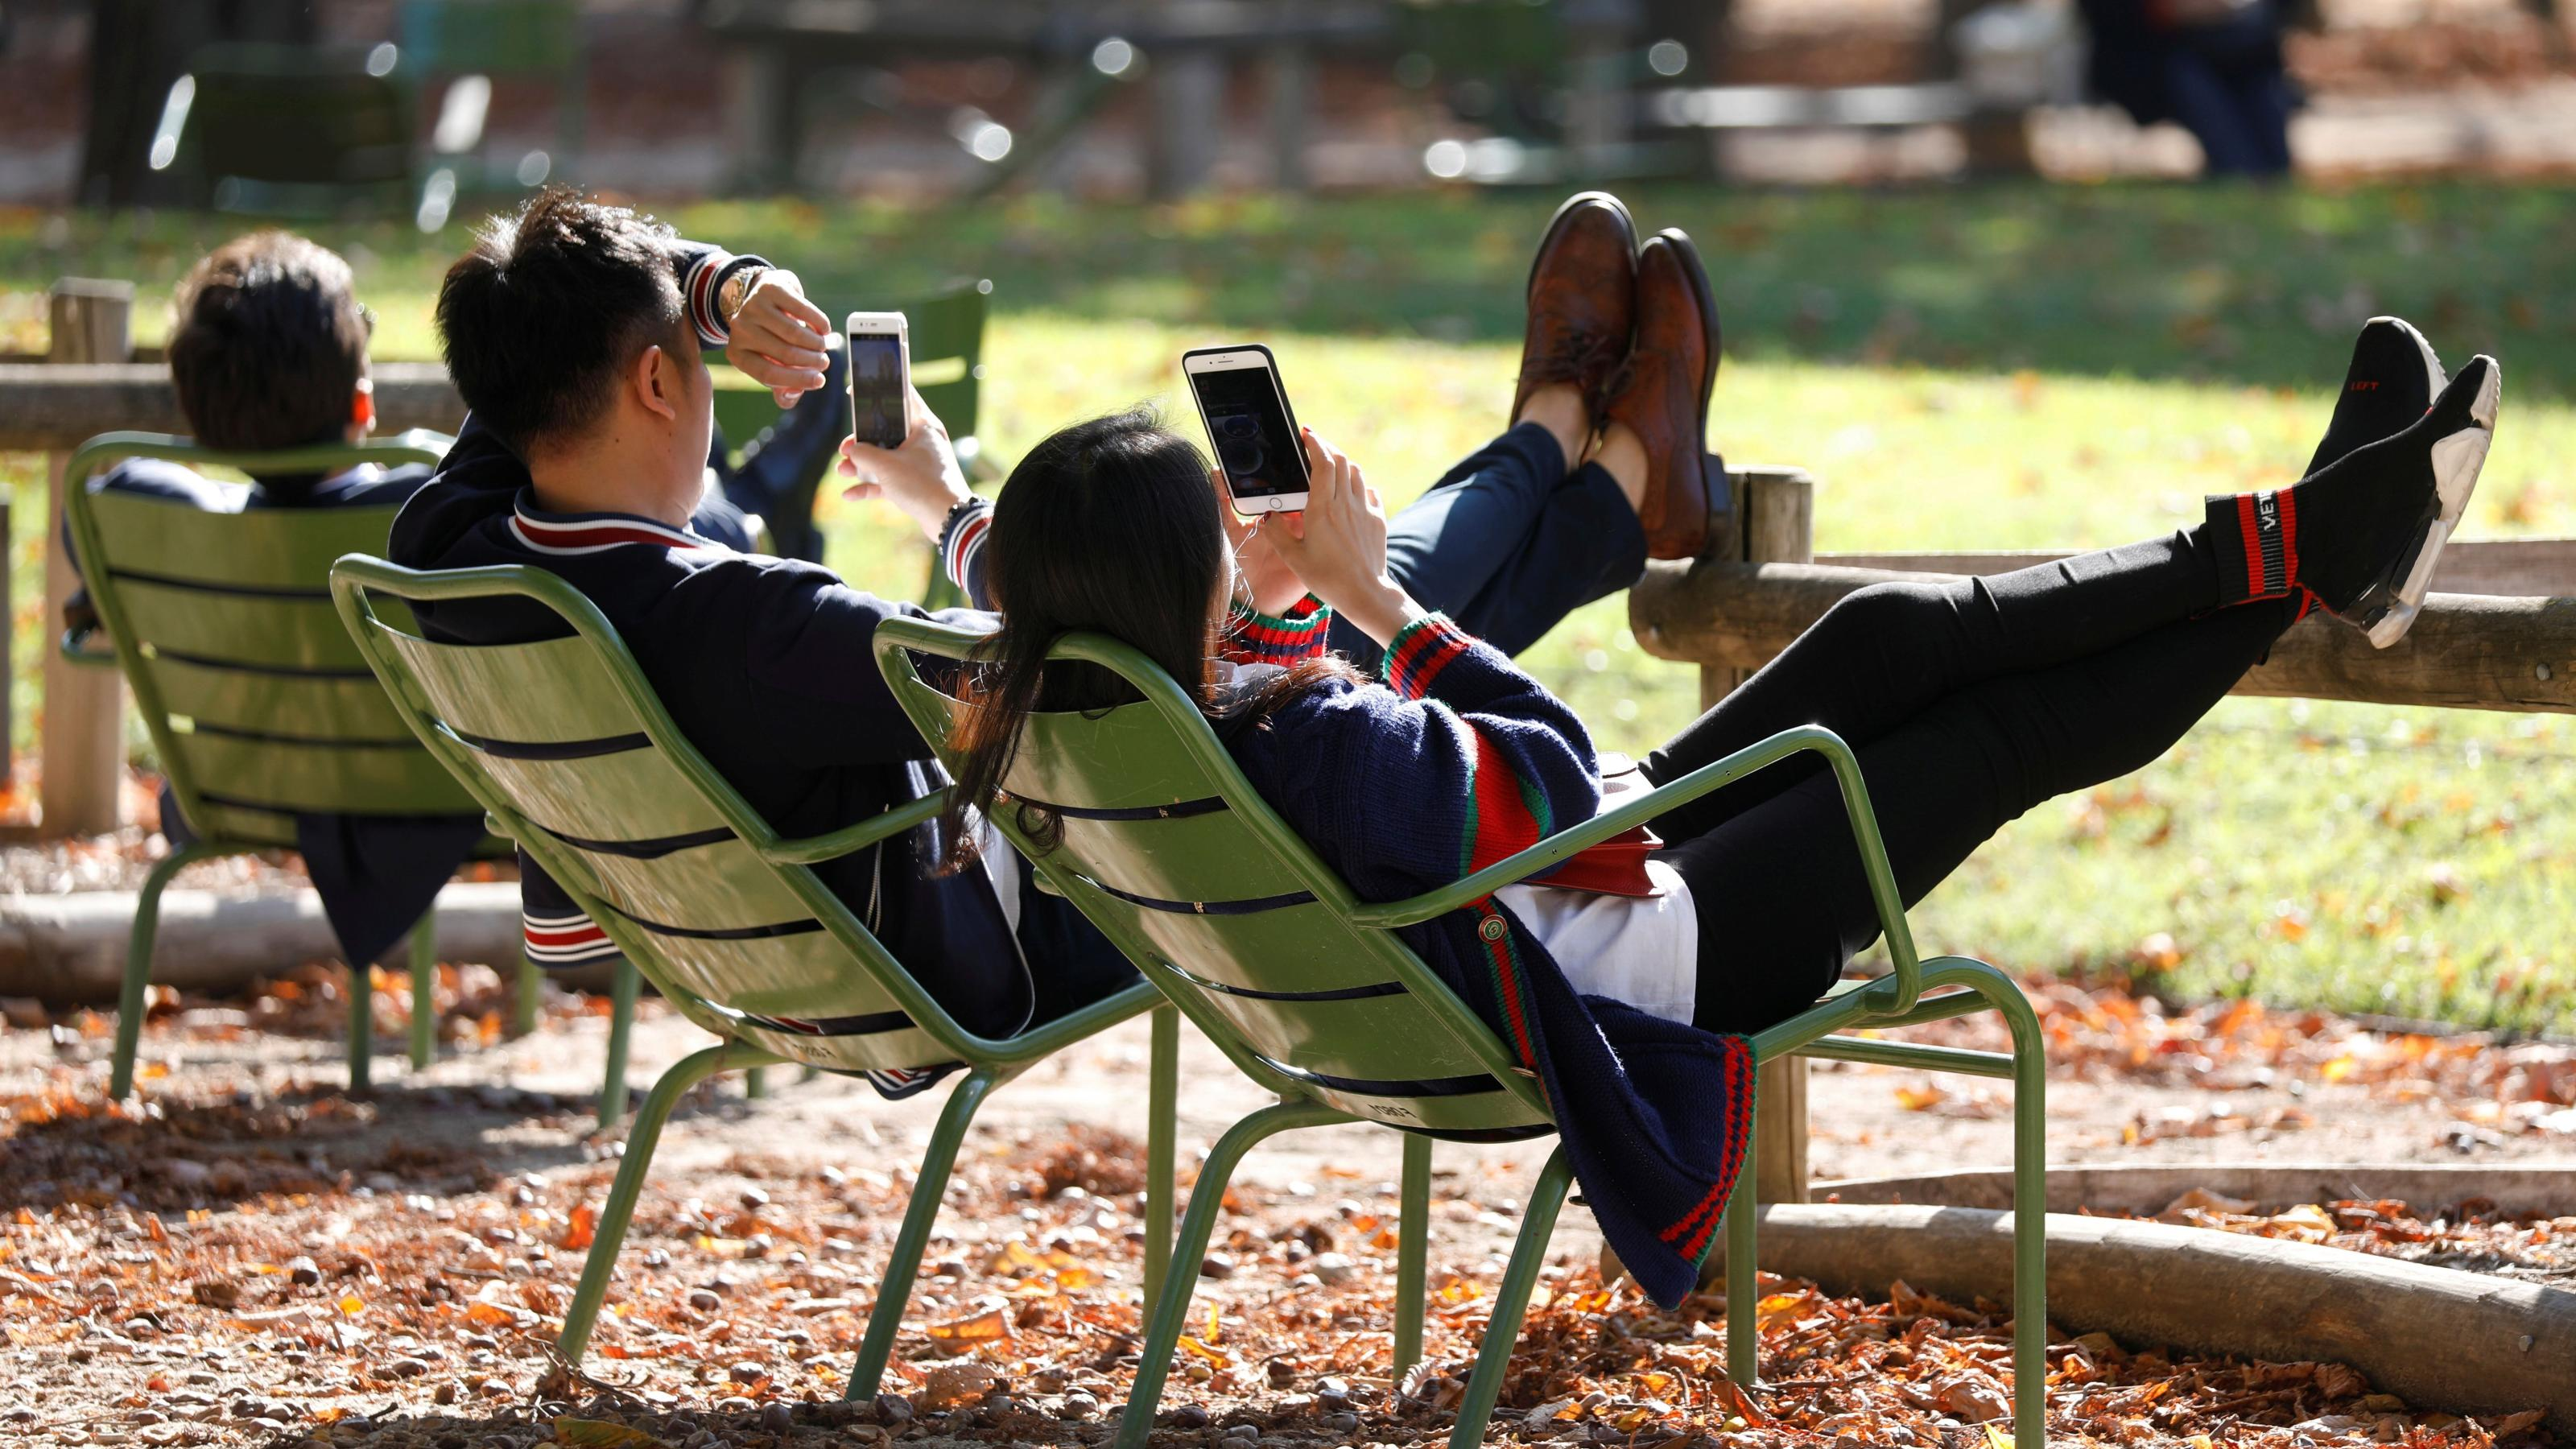 Are relationships better without social media?